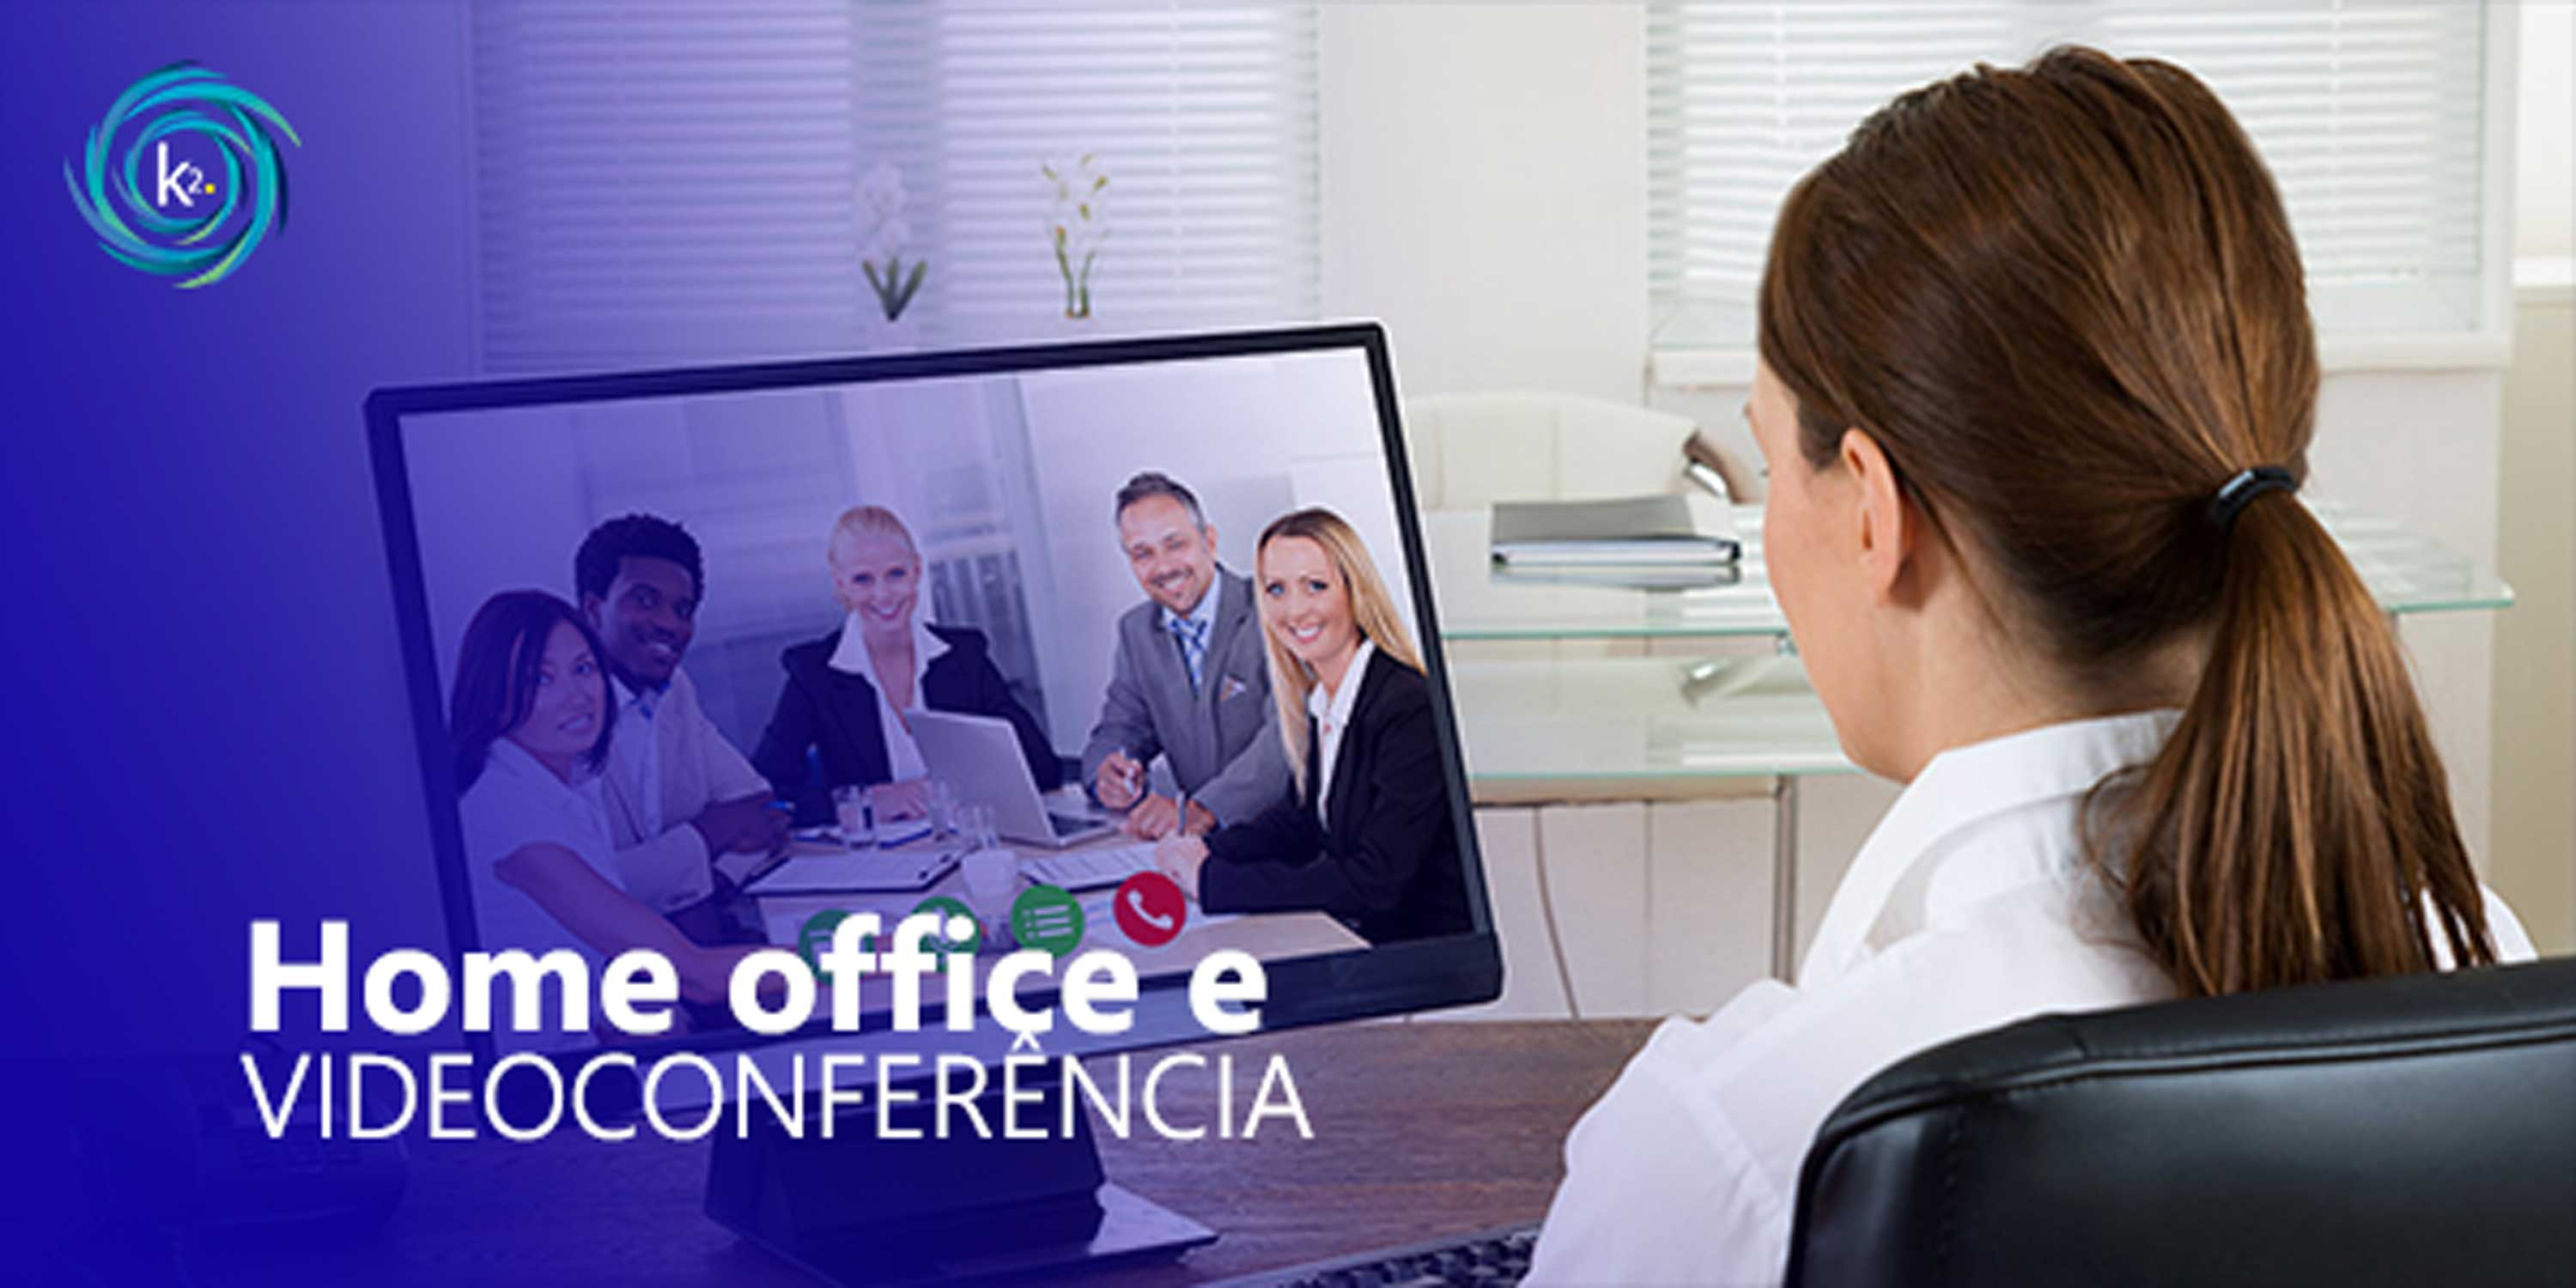 home office e videoconferência